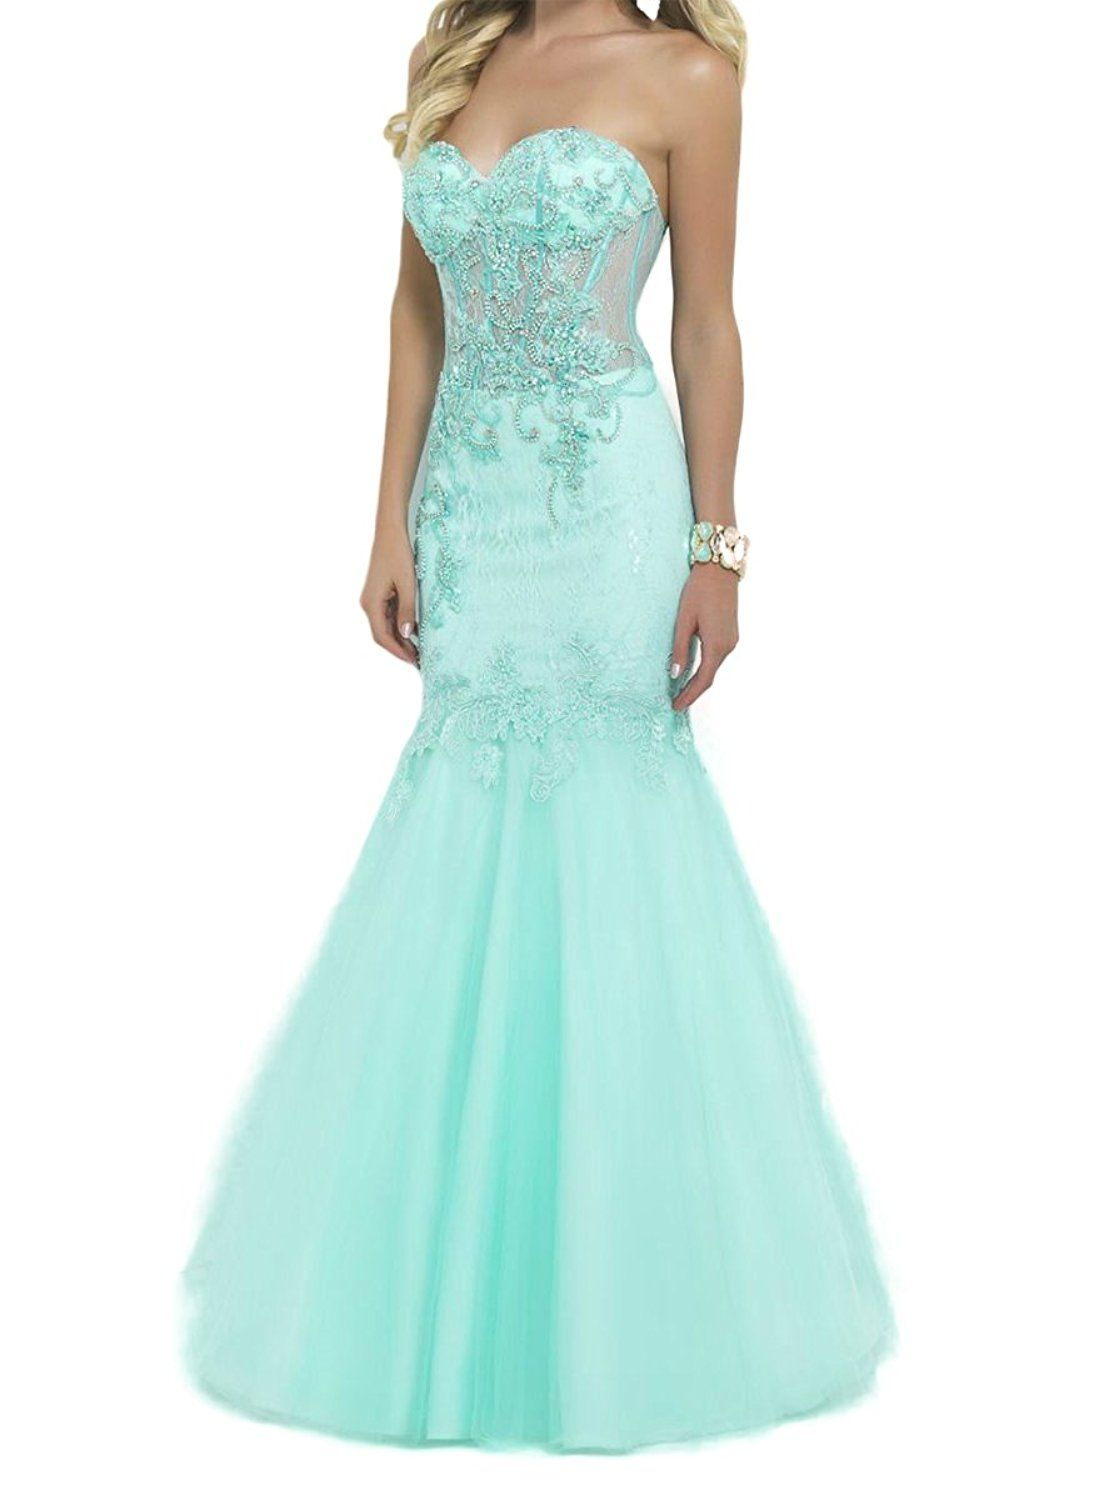 Sdress womenus beaded lace appliques sweetheart illusion bodice long